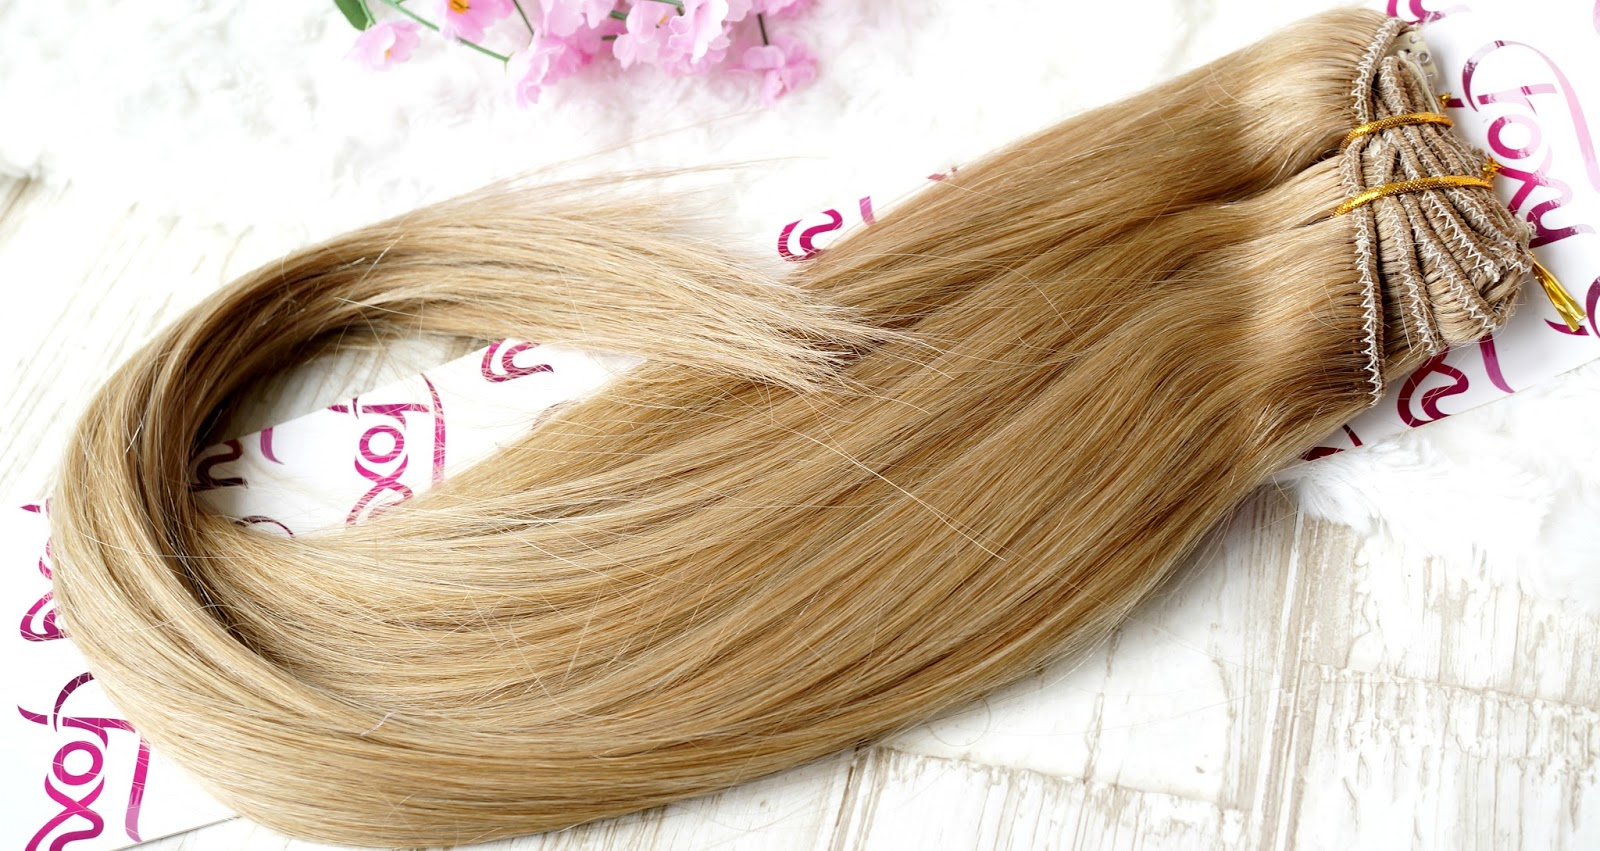 Birds Words Beauty Fashion Lifestyle Foxy Hair Clip In Extensions